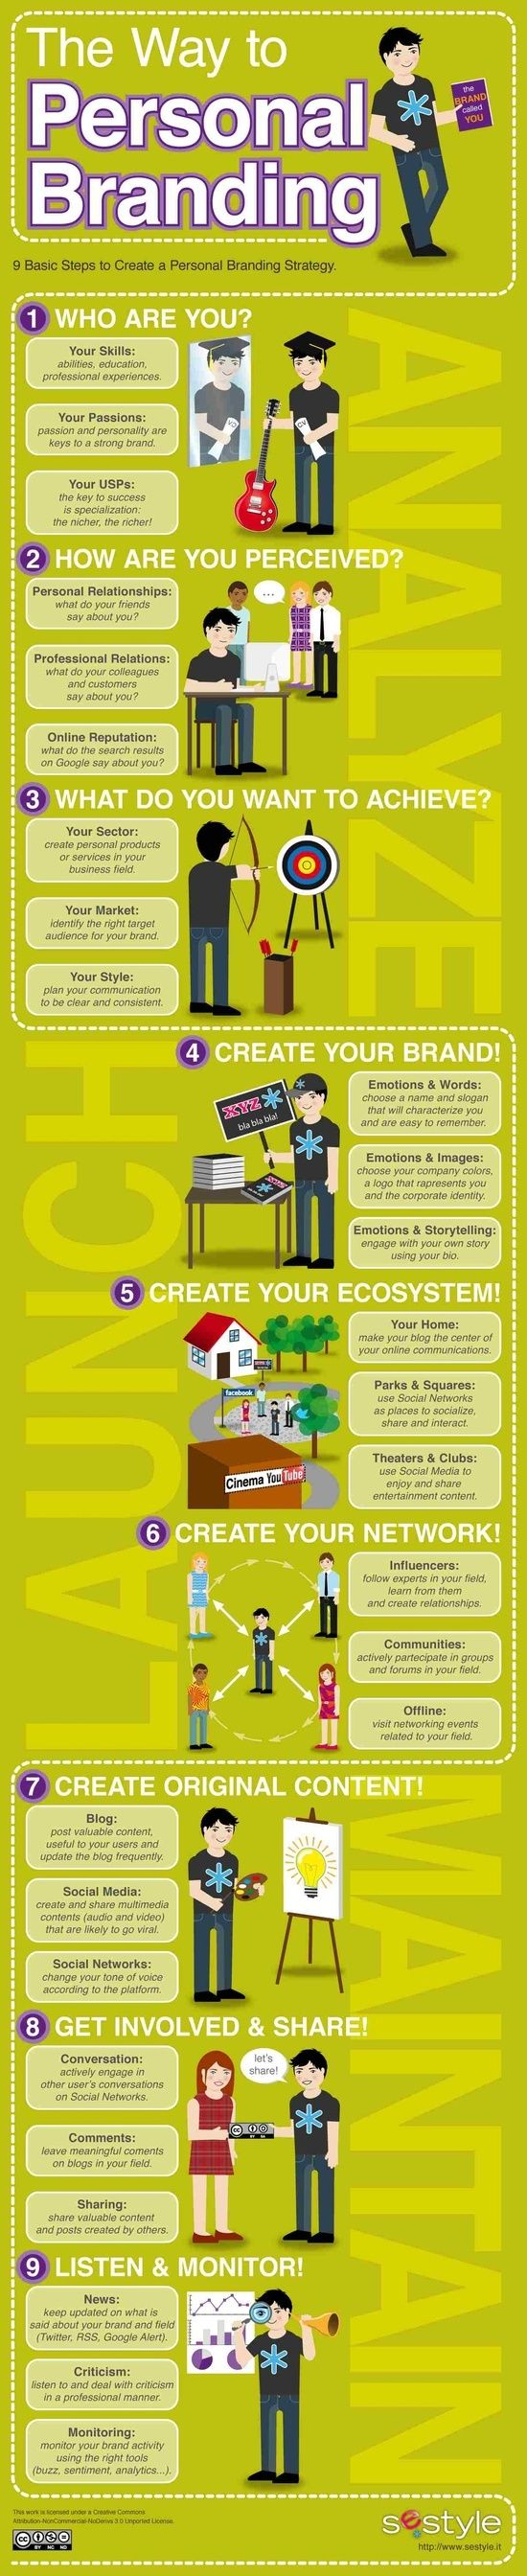 How to Create in 9 Steps Your Personal Branding Strategy #blog #business #success #entrepreneur #entrepreneurship #owner #small #etsy #9 #steps #personal #tips #ideas #infographic #successful #characteristics #branding #self #image #brand #company #blogging #social #media